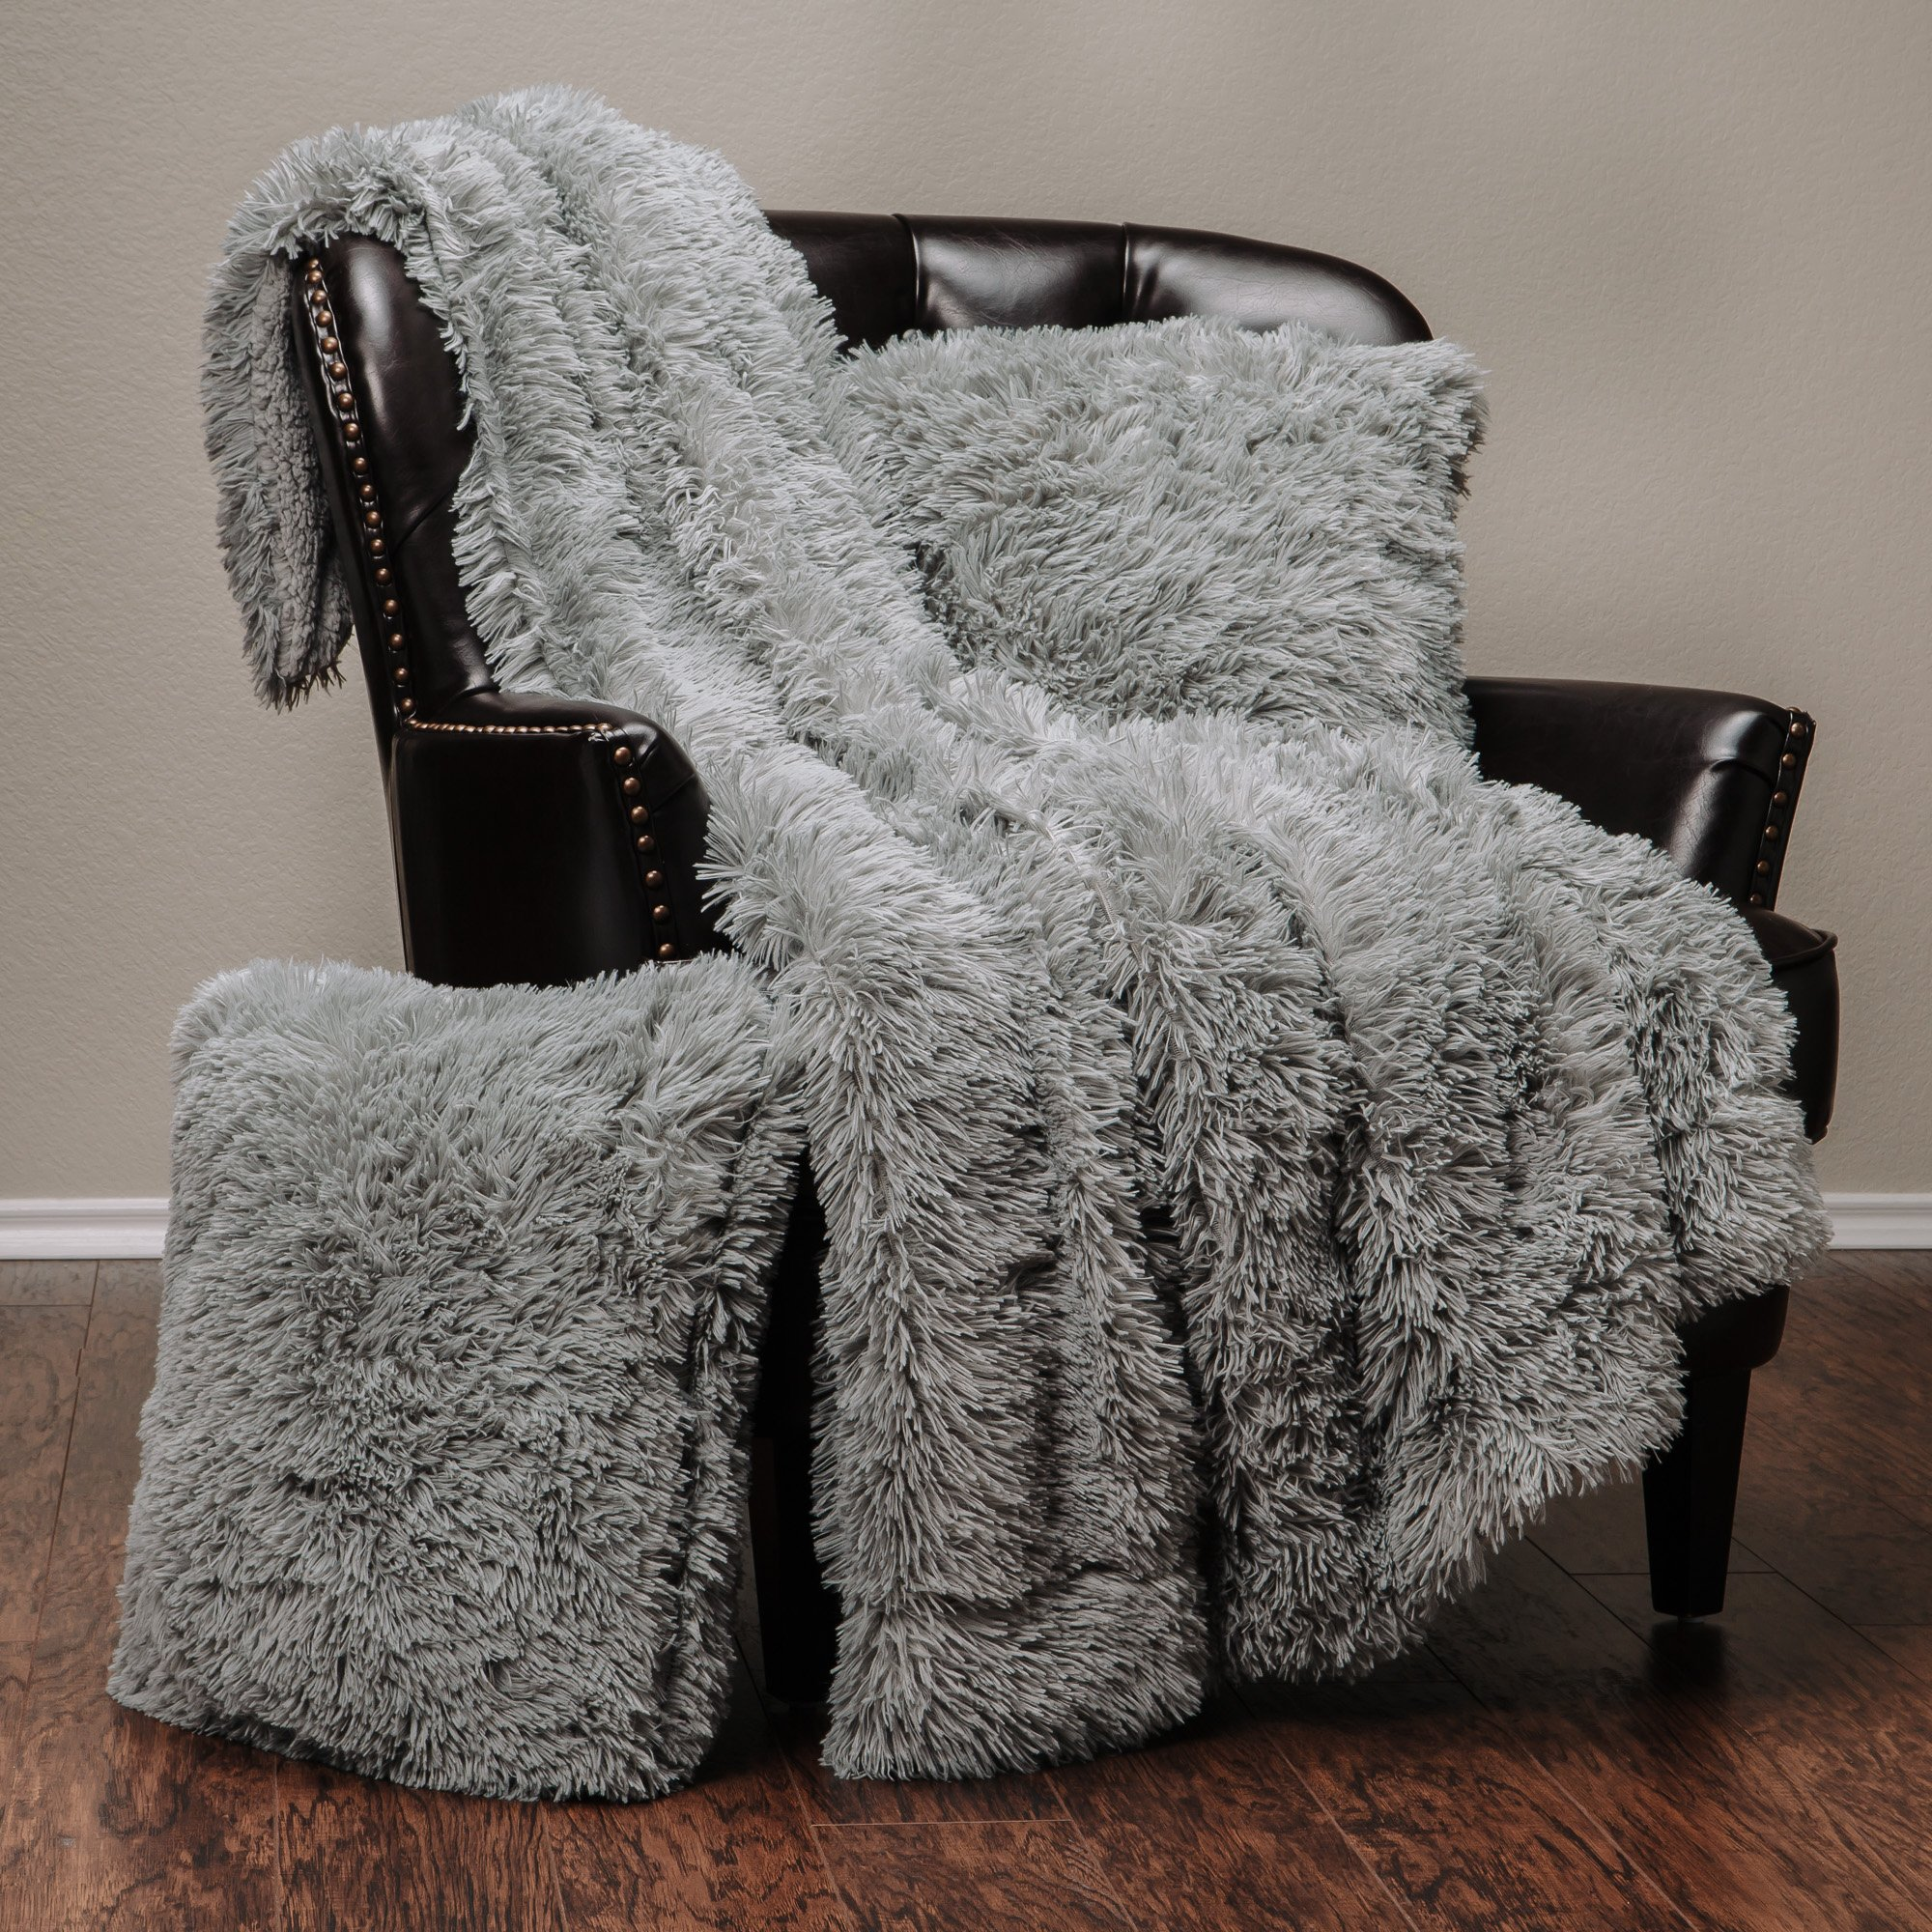 3 Piece Soft Shaggy Throw Blanket Pillow Cover Set Chic